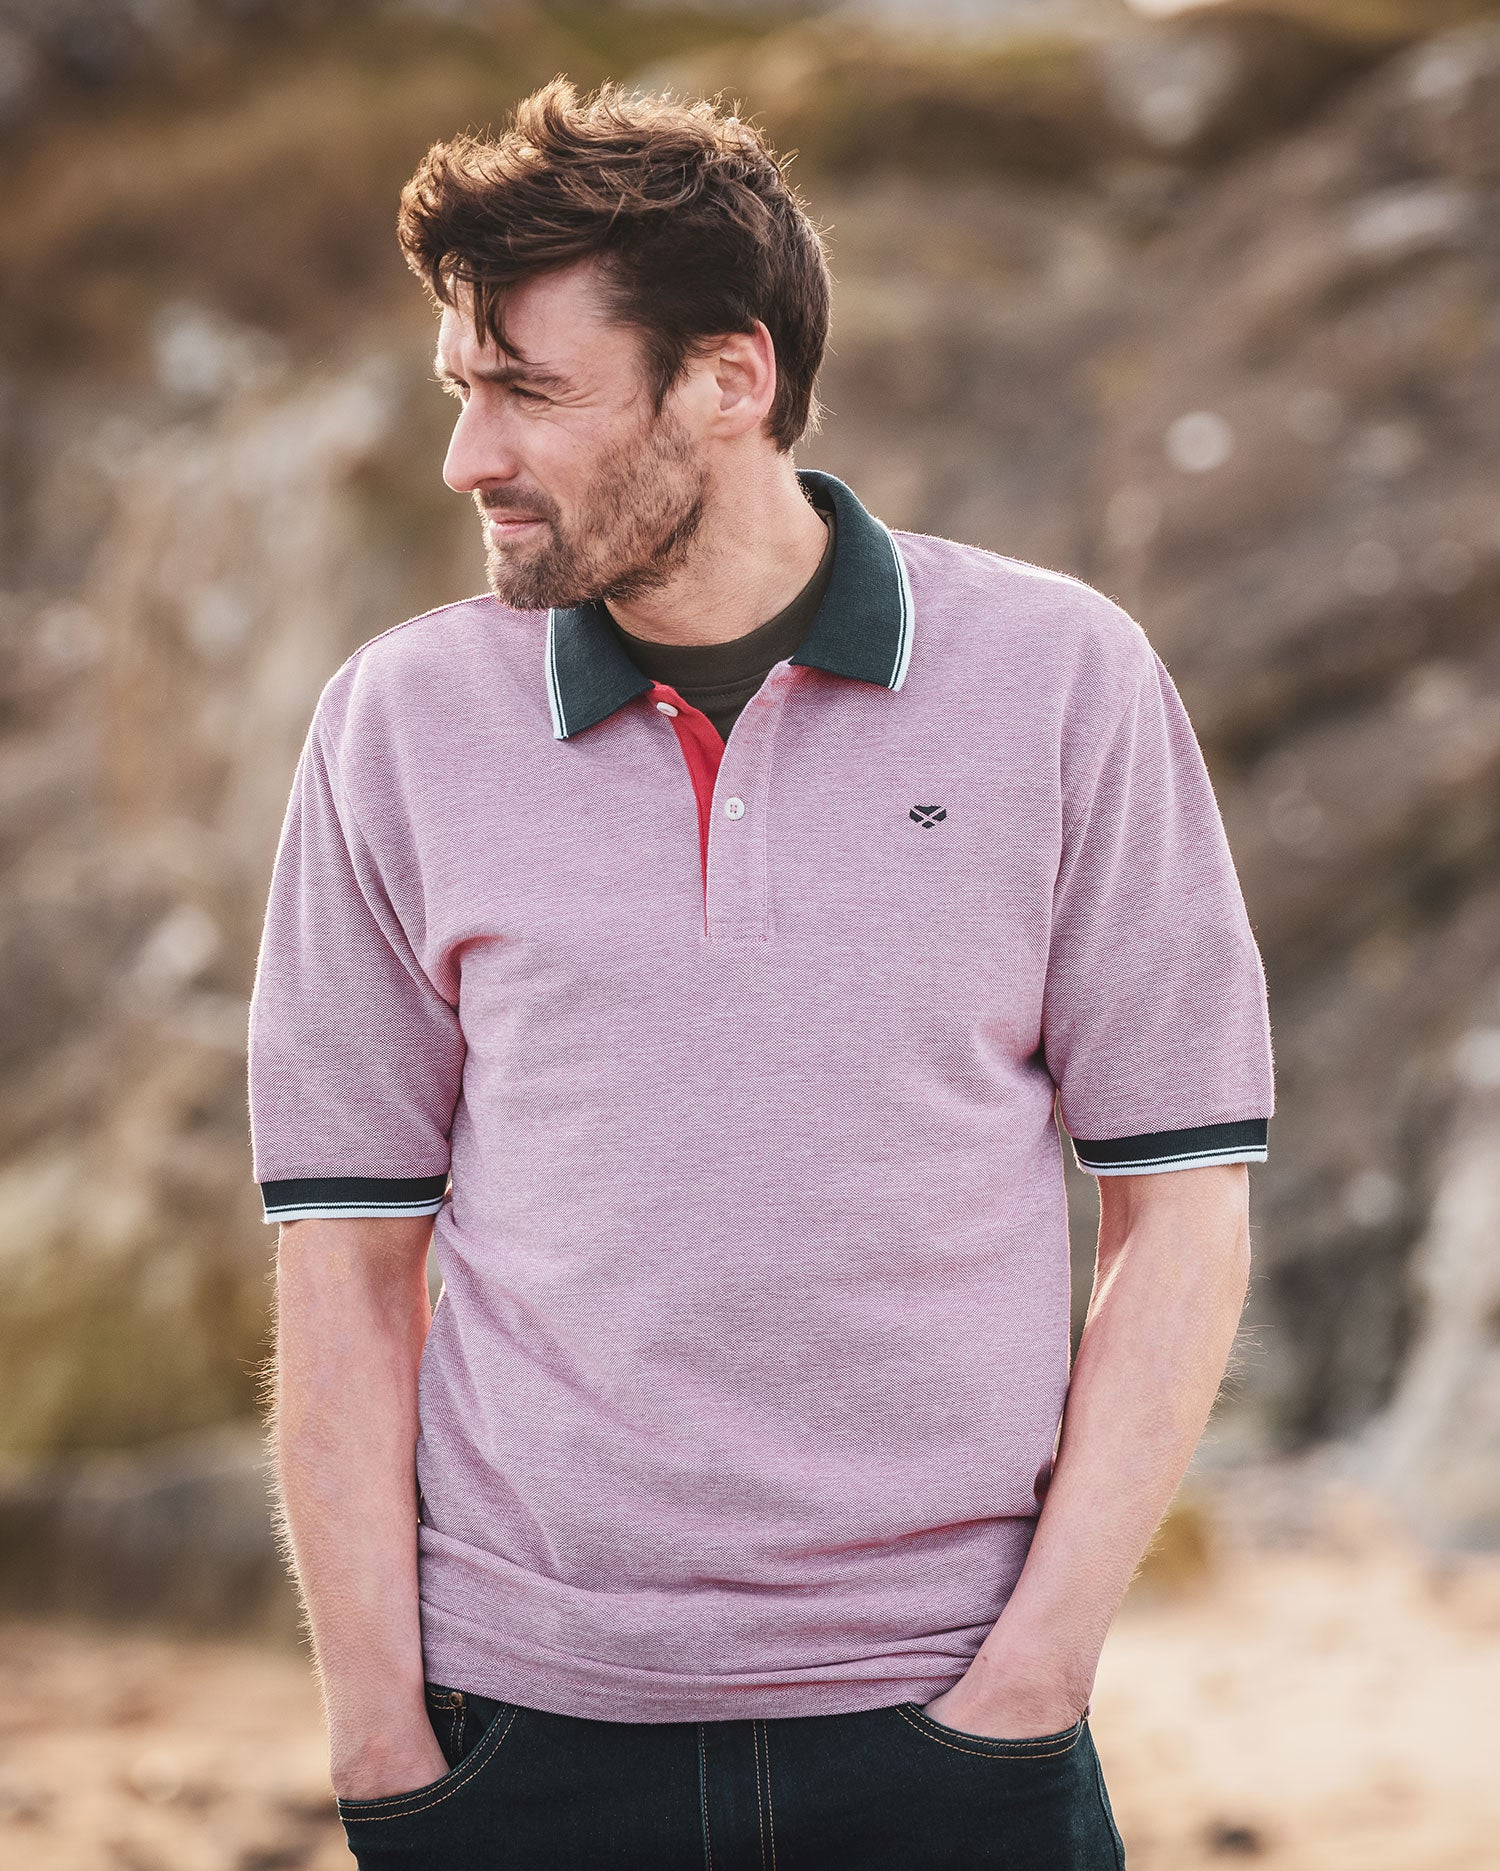 Contrast finish on the Hoggs Kinghorn polo shirt